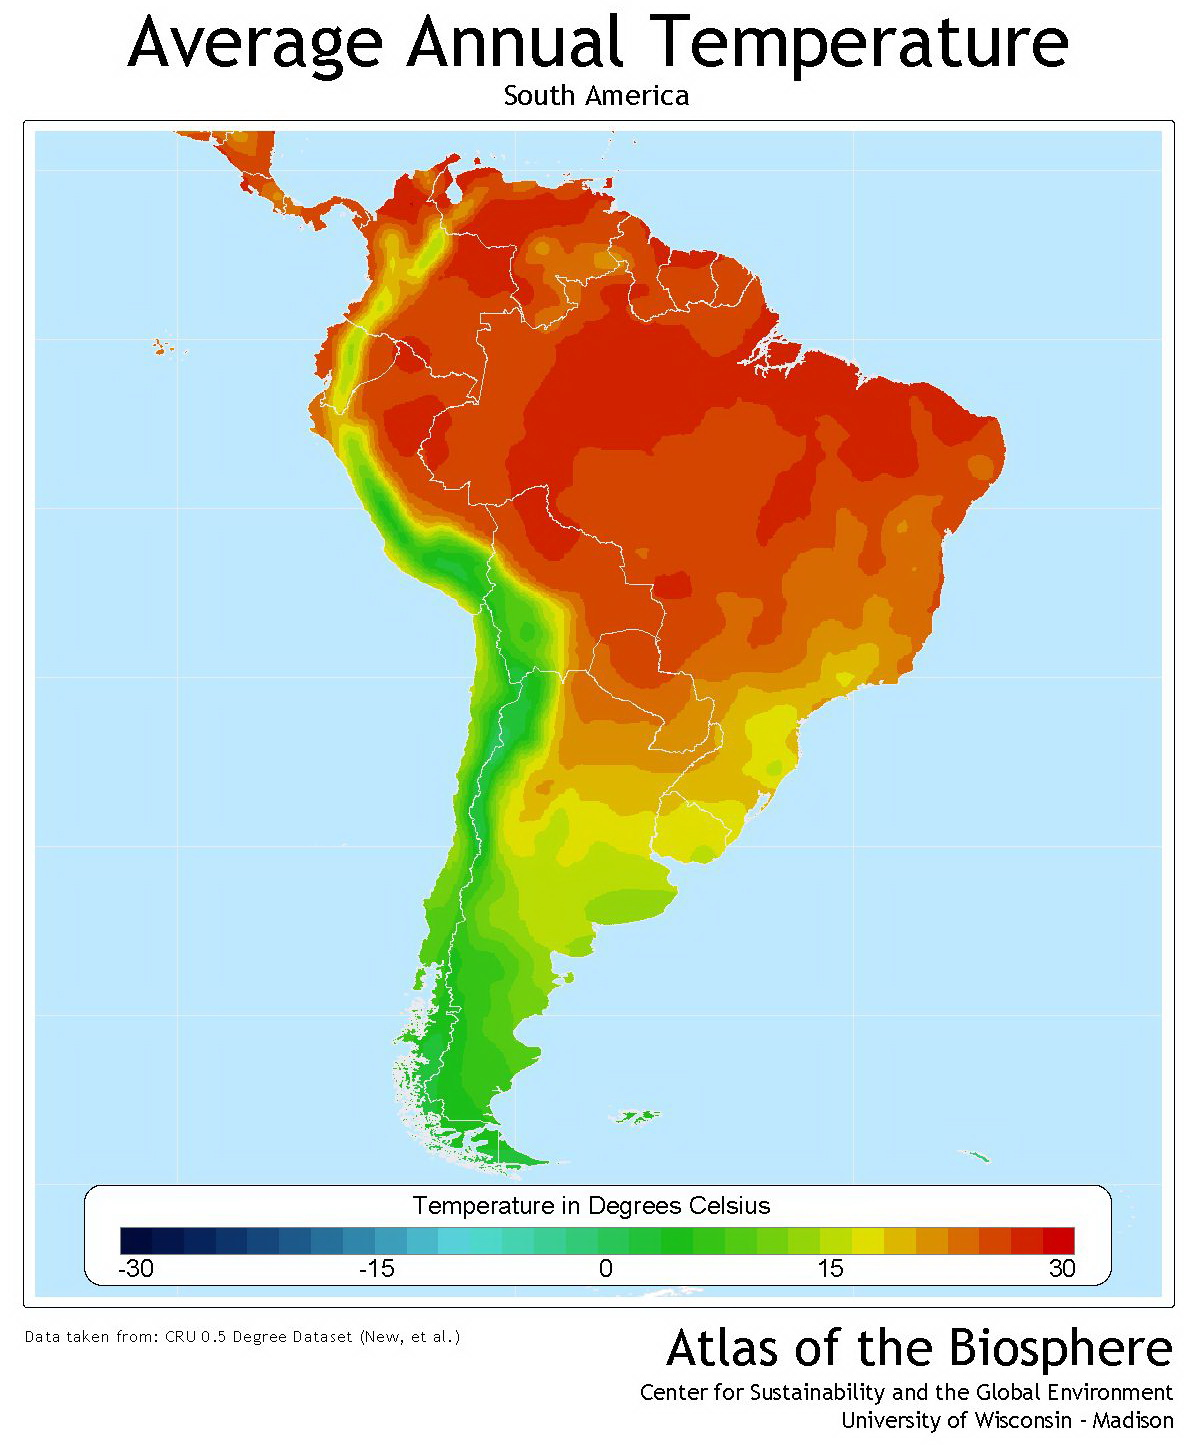 South America average annual temperature